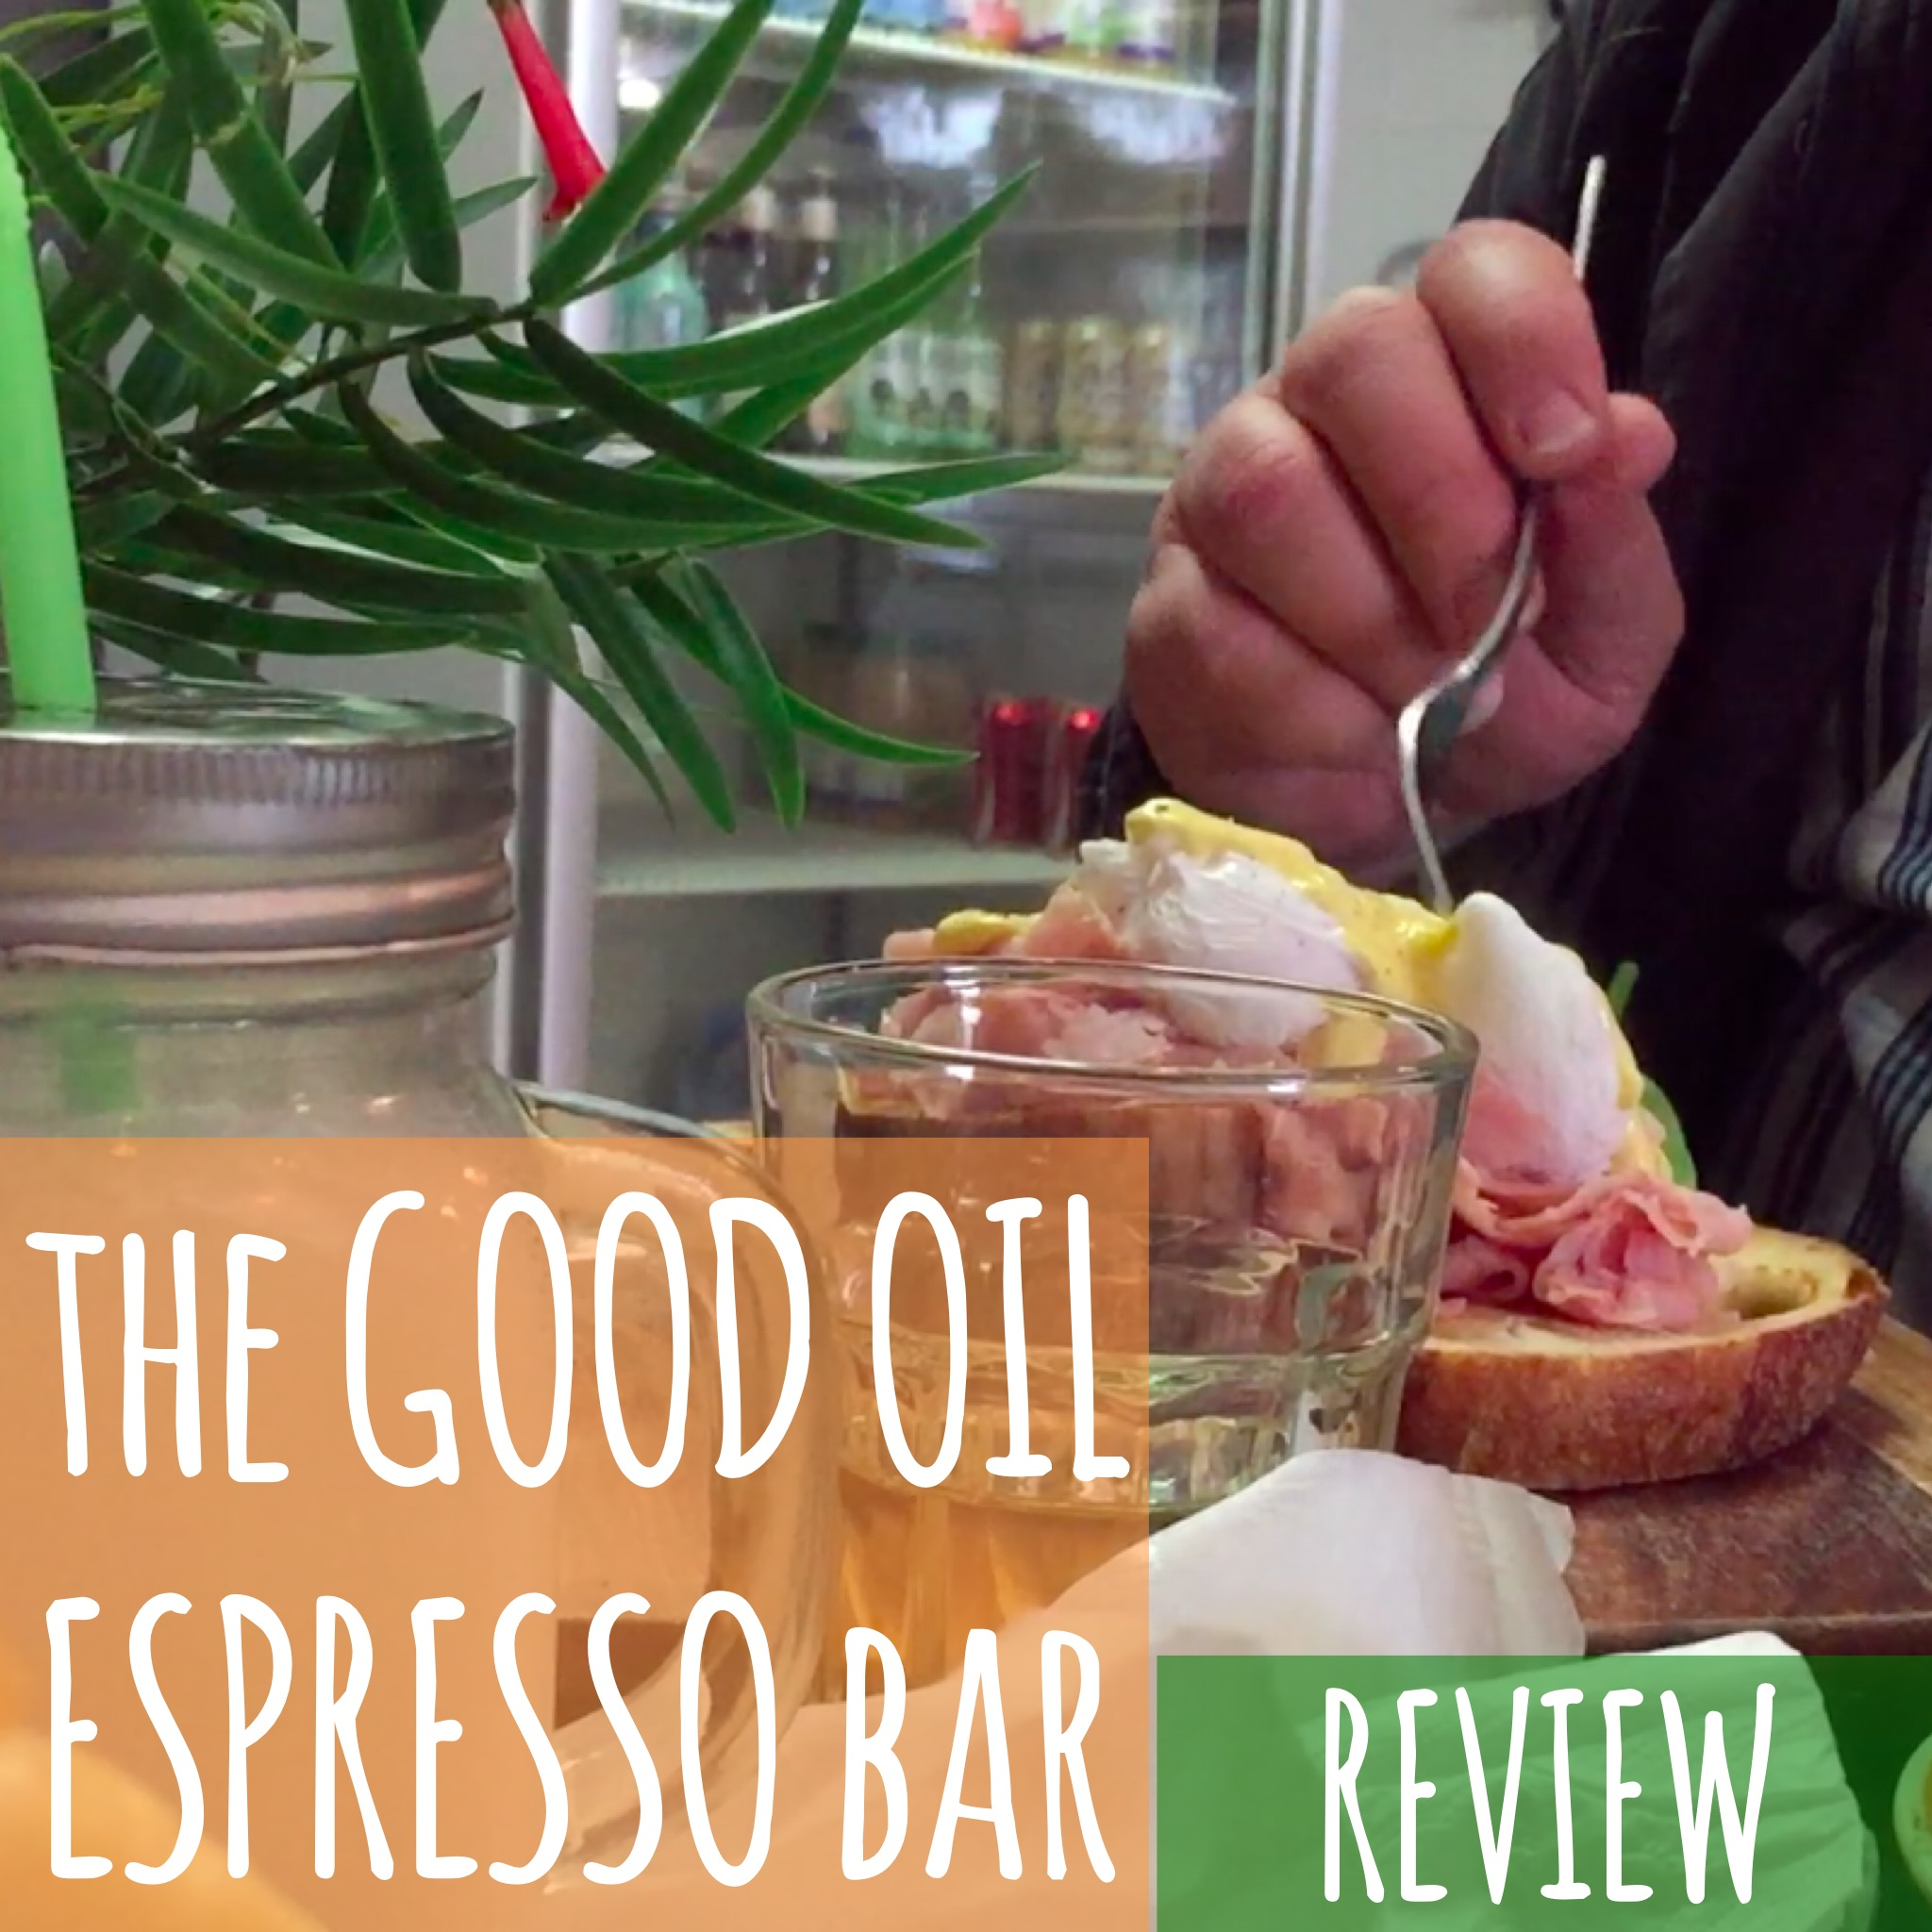 The Good Oil Espresso